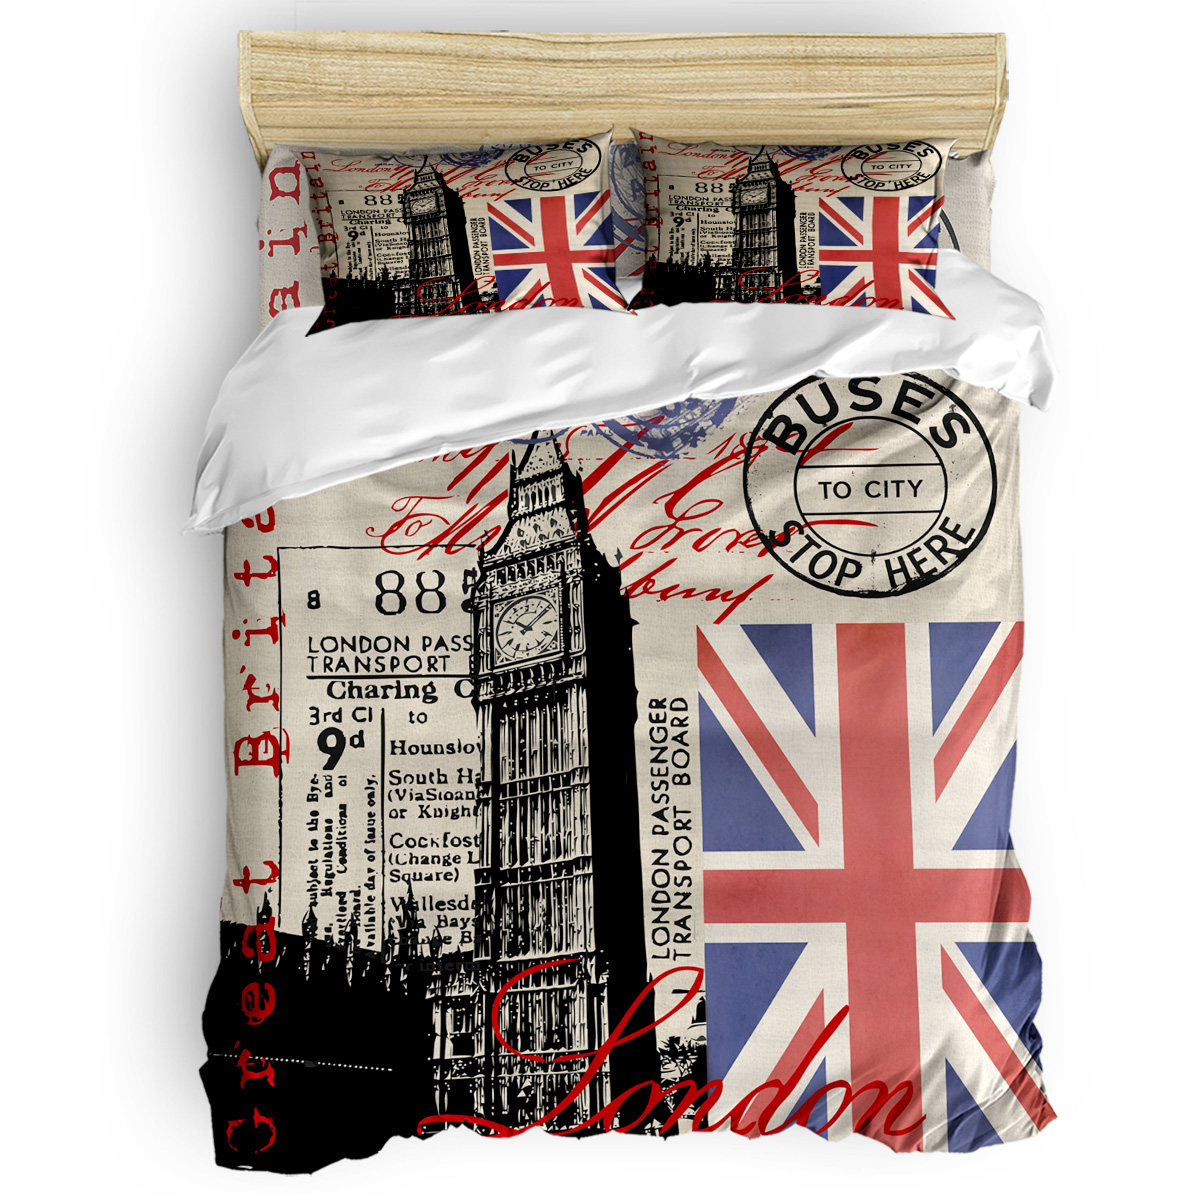 London Great Britain Big Ben Flag Collage 3D Cotton King Size Queen Size Quilt Cover Set Bedclothes Comforter Single Bedding SetLondon Great Britain Big Ben Flag Collage 3D Cotton King Size Queen Size Quilt Cover Set Bedclothes Comforter Single Bedding Set